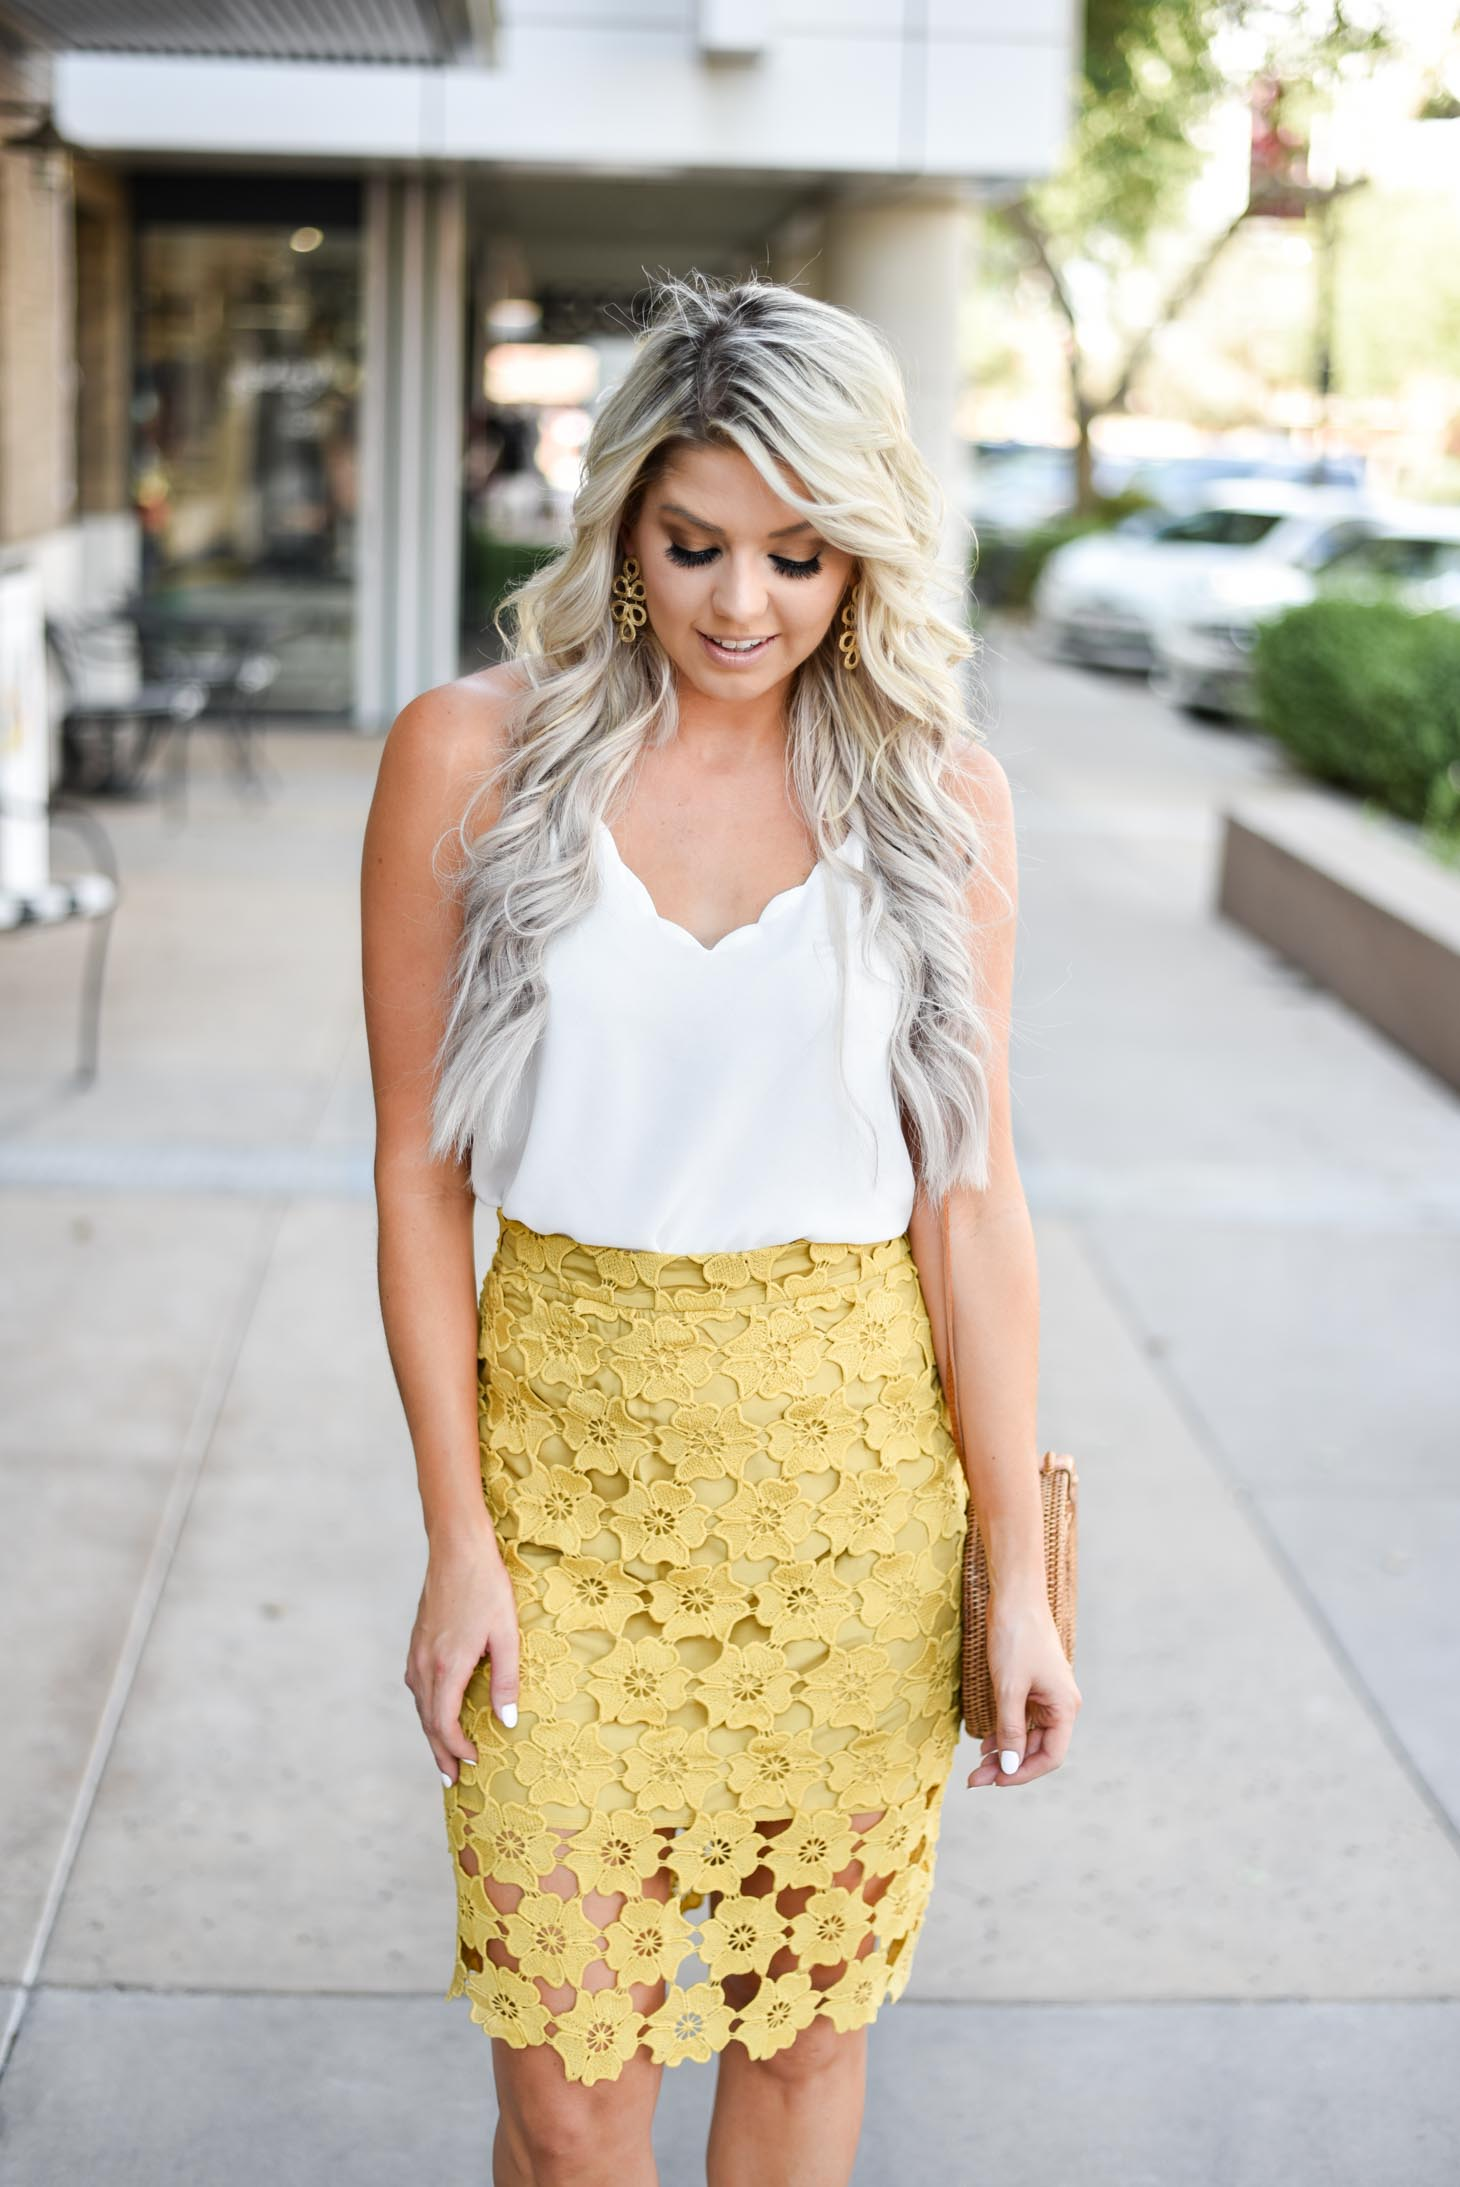 Erin Elizabeth of Wink and a Twirl shares the cutest yellow lace midi skirt